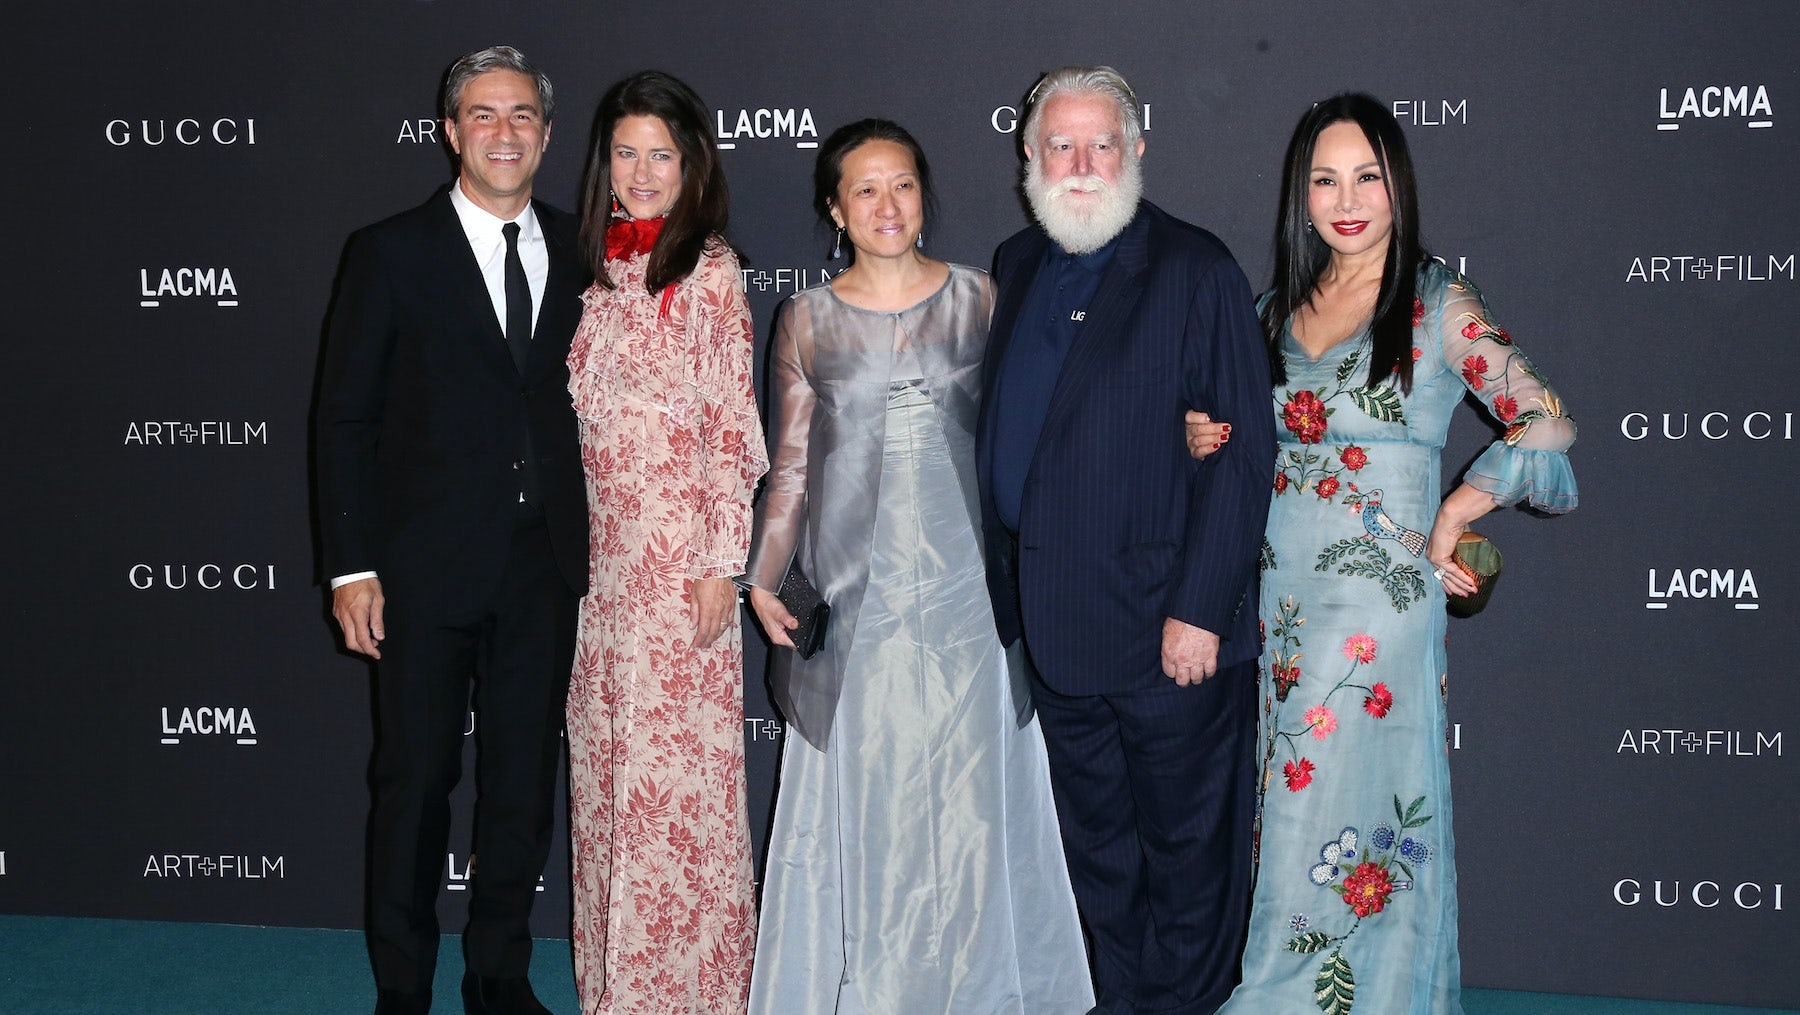 Michael Govan, Katherine Ross, Kyung Turrell, James Turrell, and Eva Chow attend the LACMA 2015 Art+Film Gala | Photo: Frederick M. Brown/Getty Images